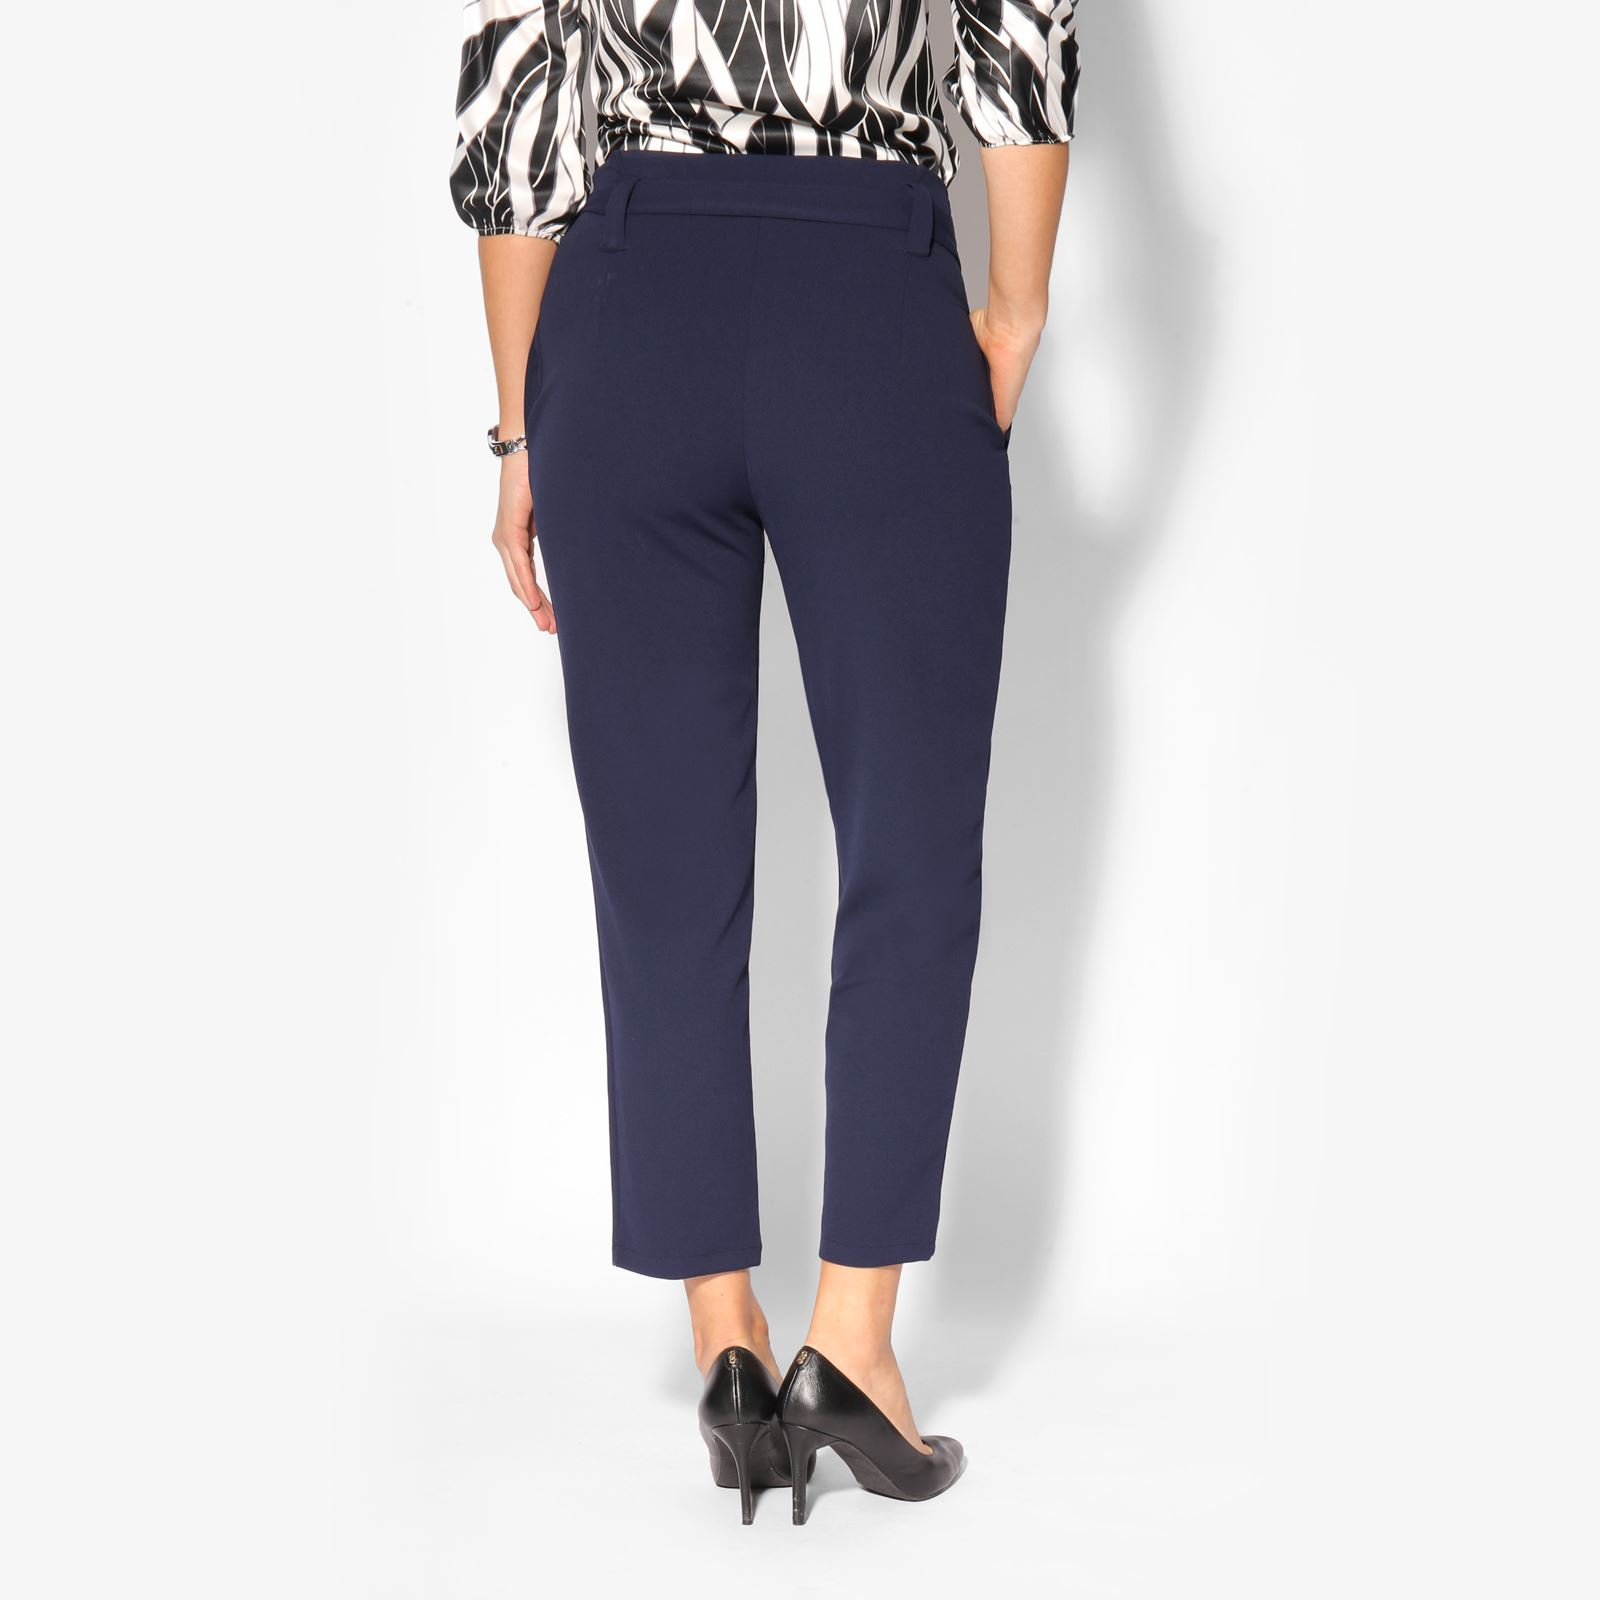 Women-High-Waist-Tapered-Pencil-Paperbag-Ladies-Trousers-Cigarette-Pants-Size thumbnail 5